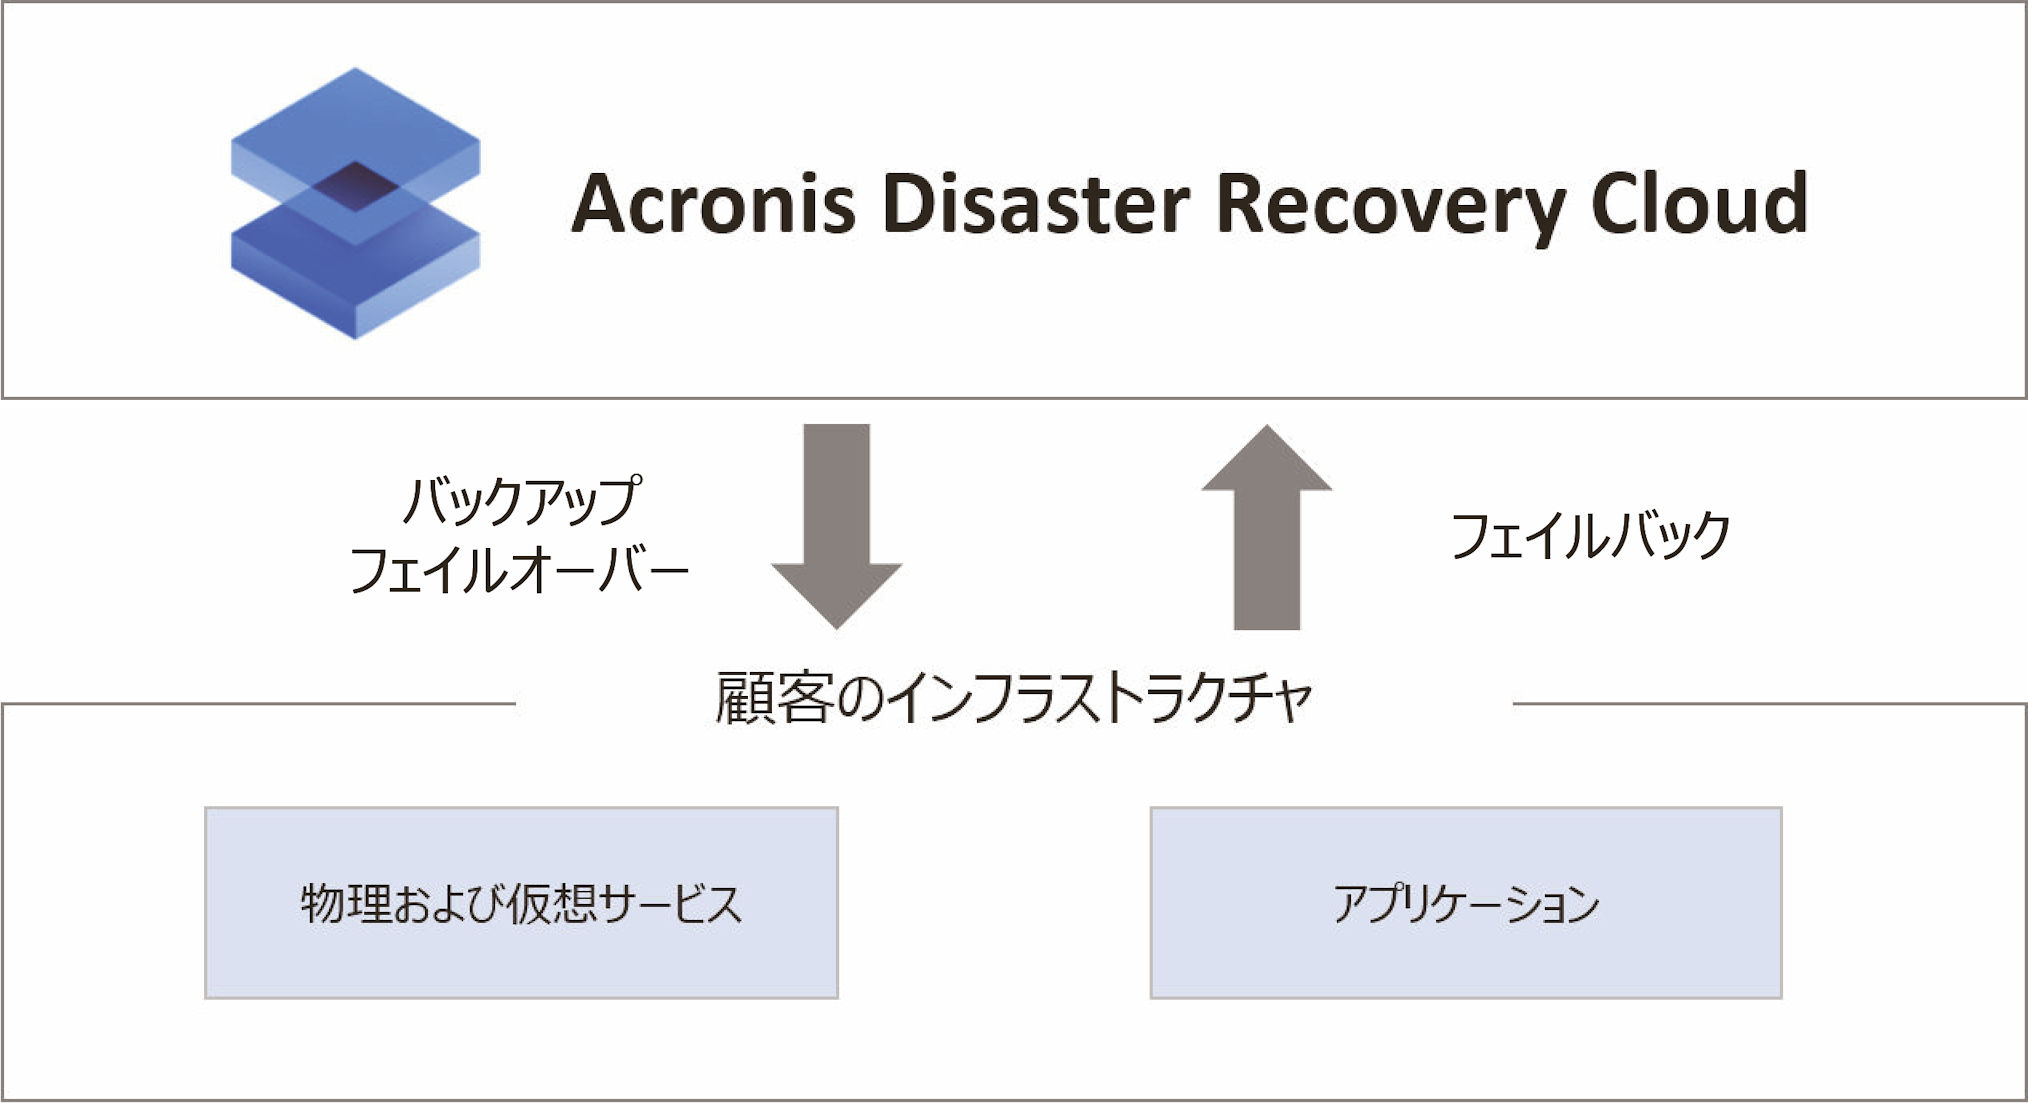 Acronis Disaster Recovery Cloud